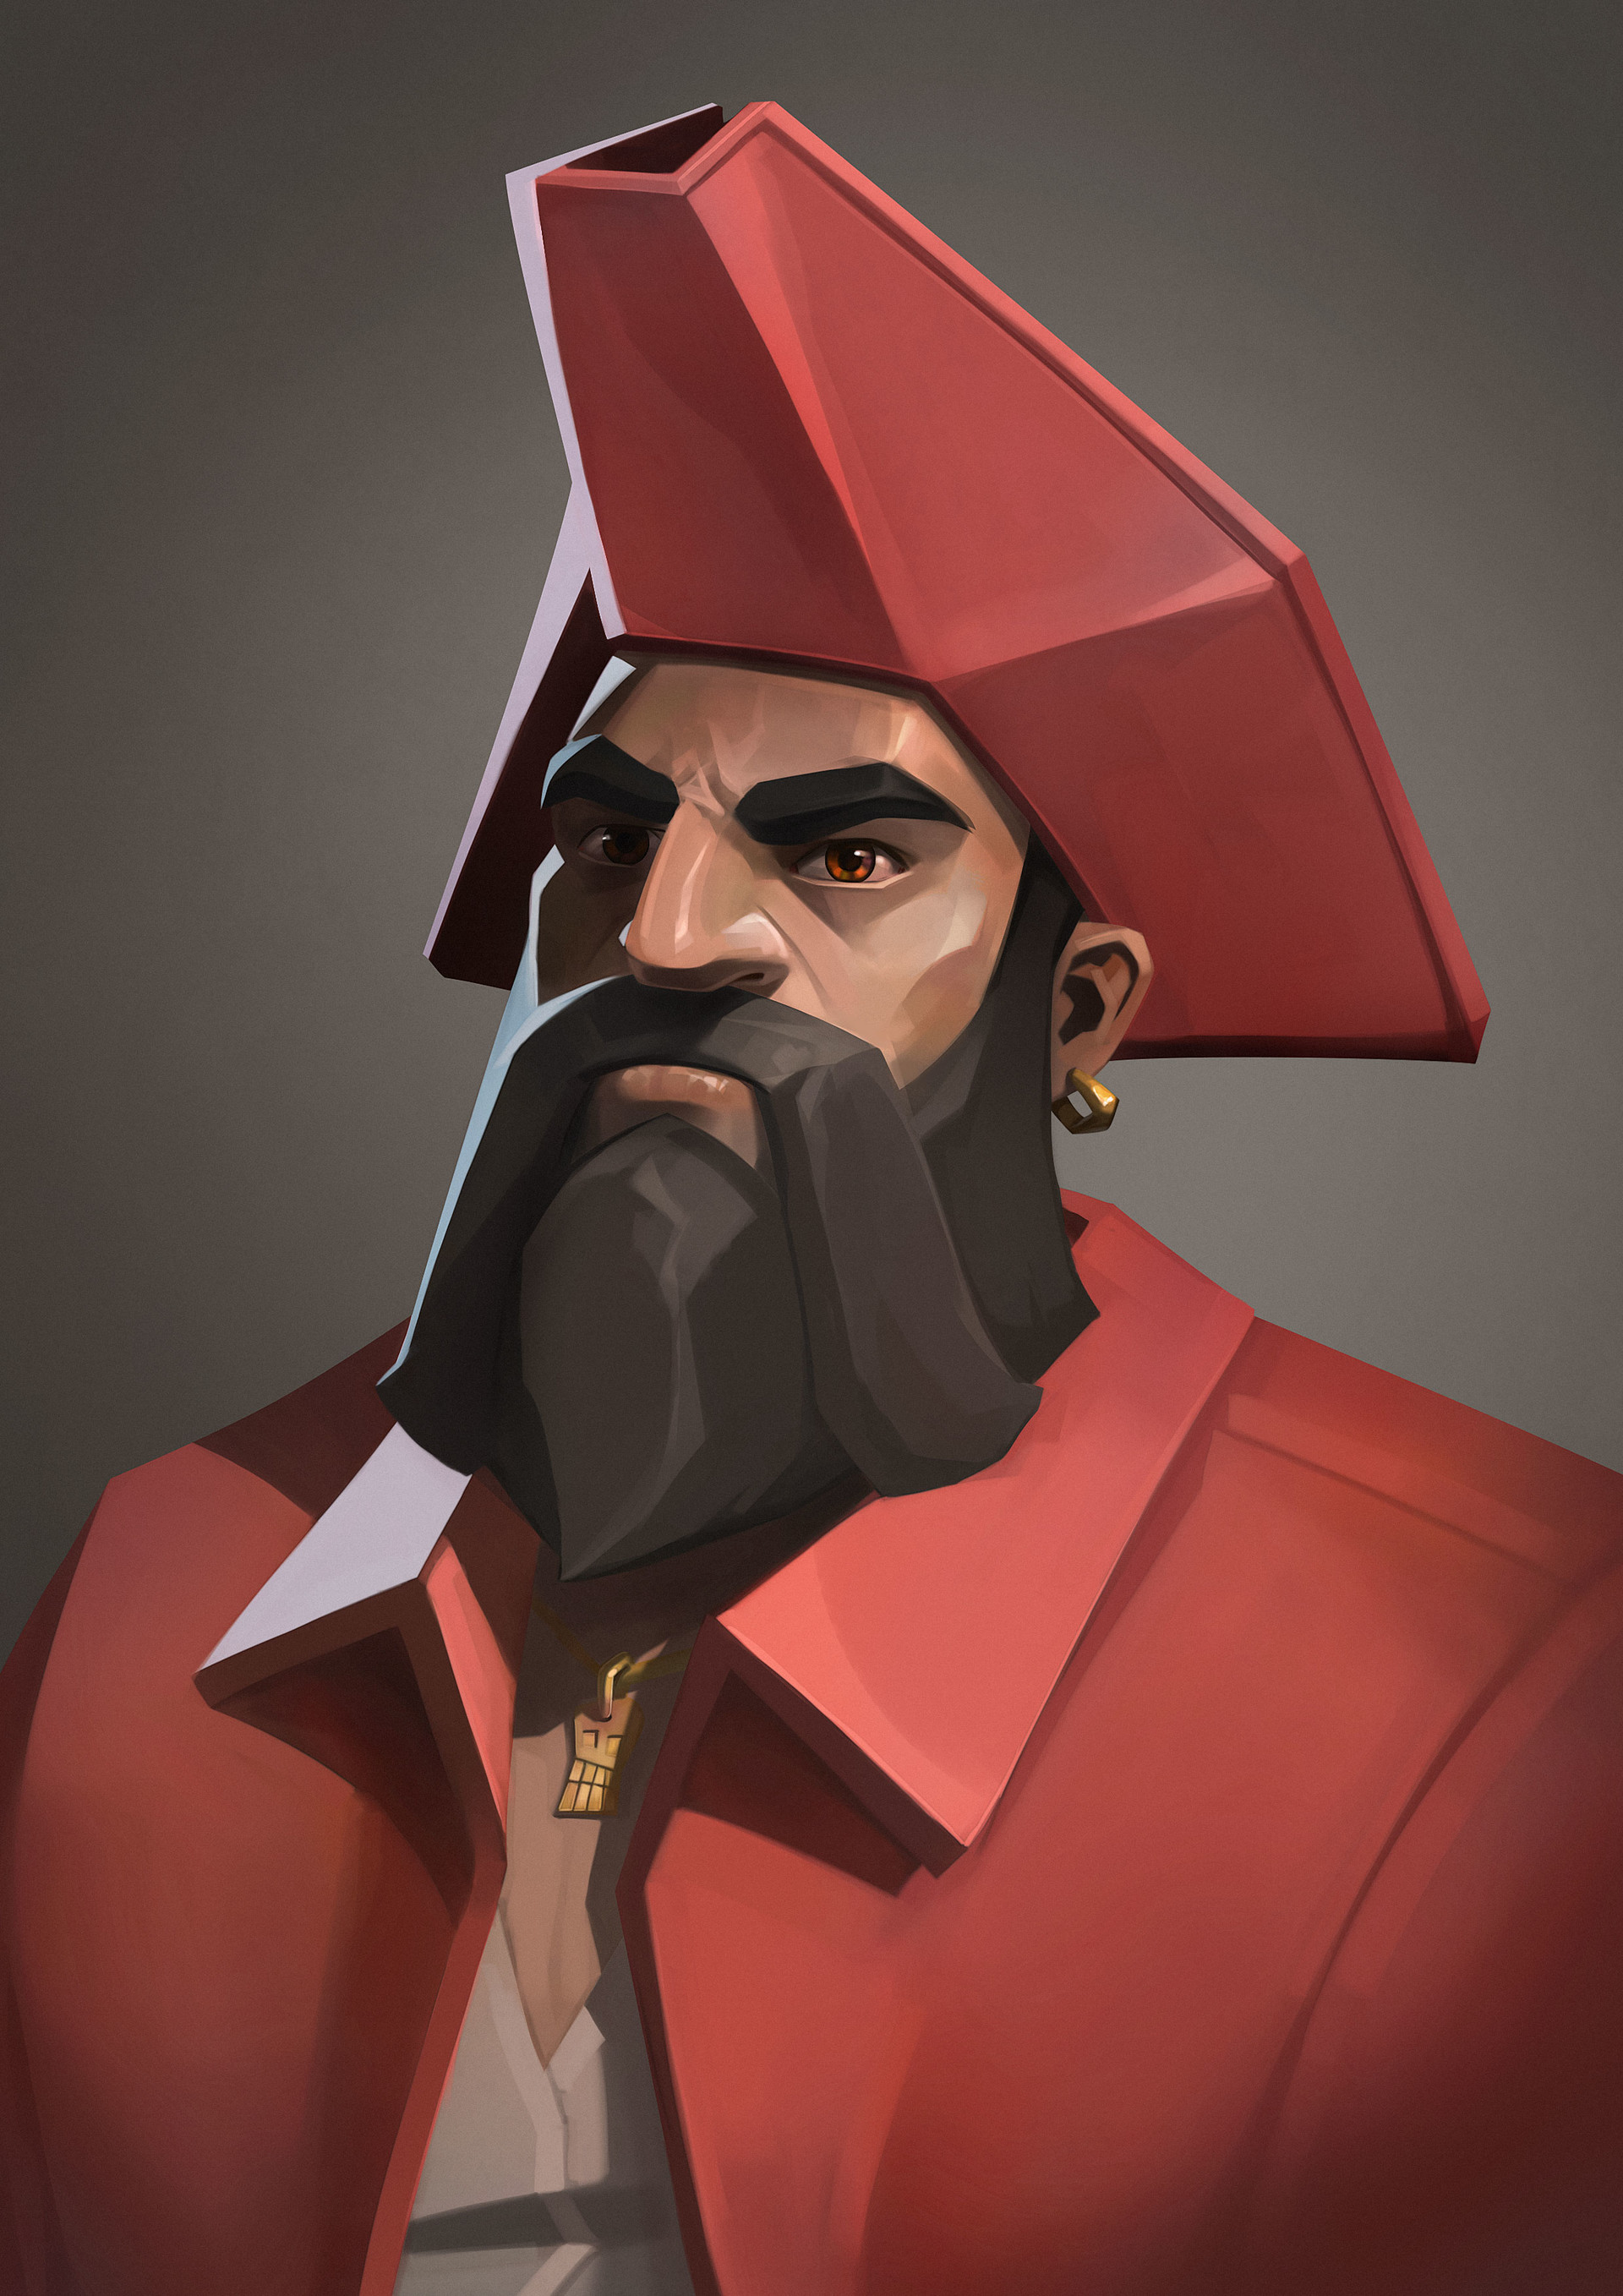 Jake bullock pirate0 portrait